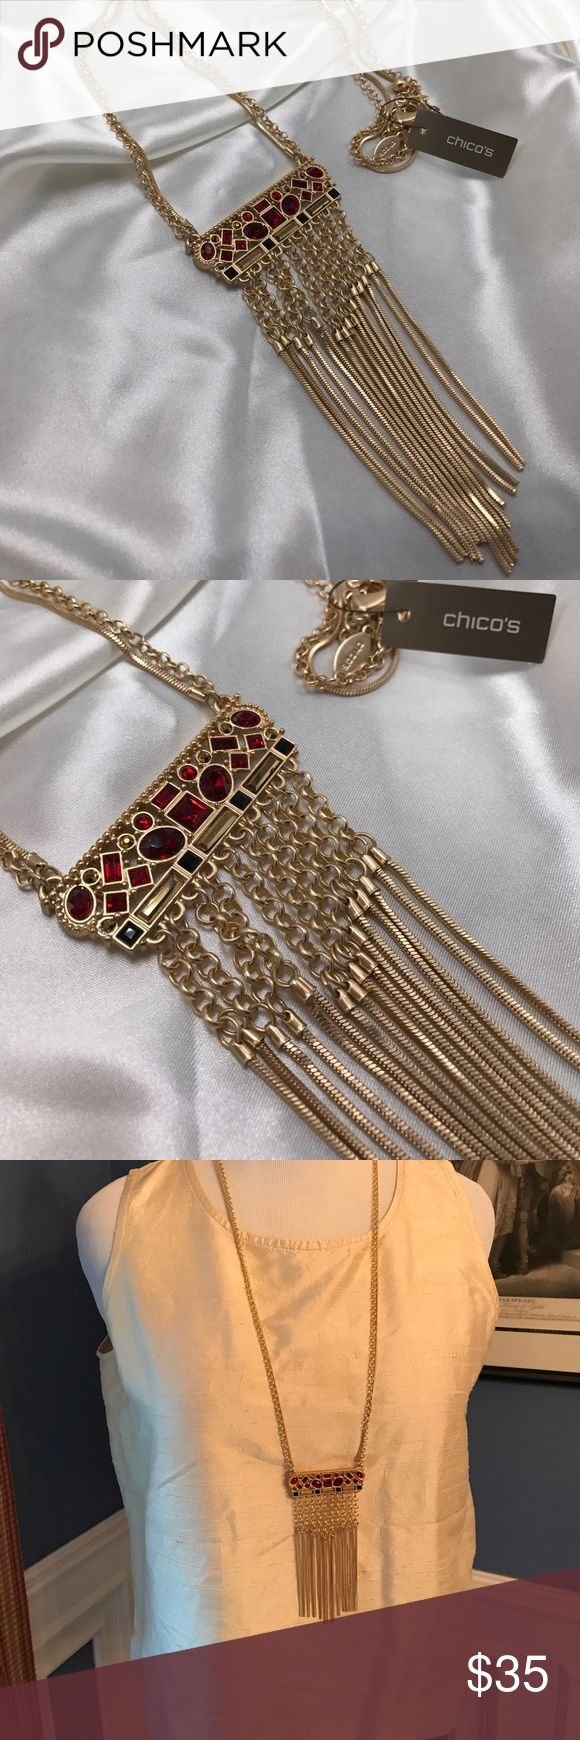 ❤️Chico's Red Rhinestone Fringed Necklace Beautiful & unusual necklace is NWT Chico's Jewelry Necklaces